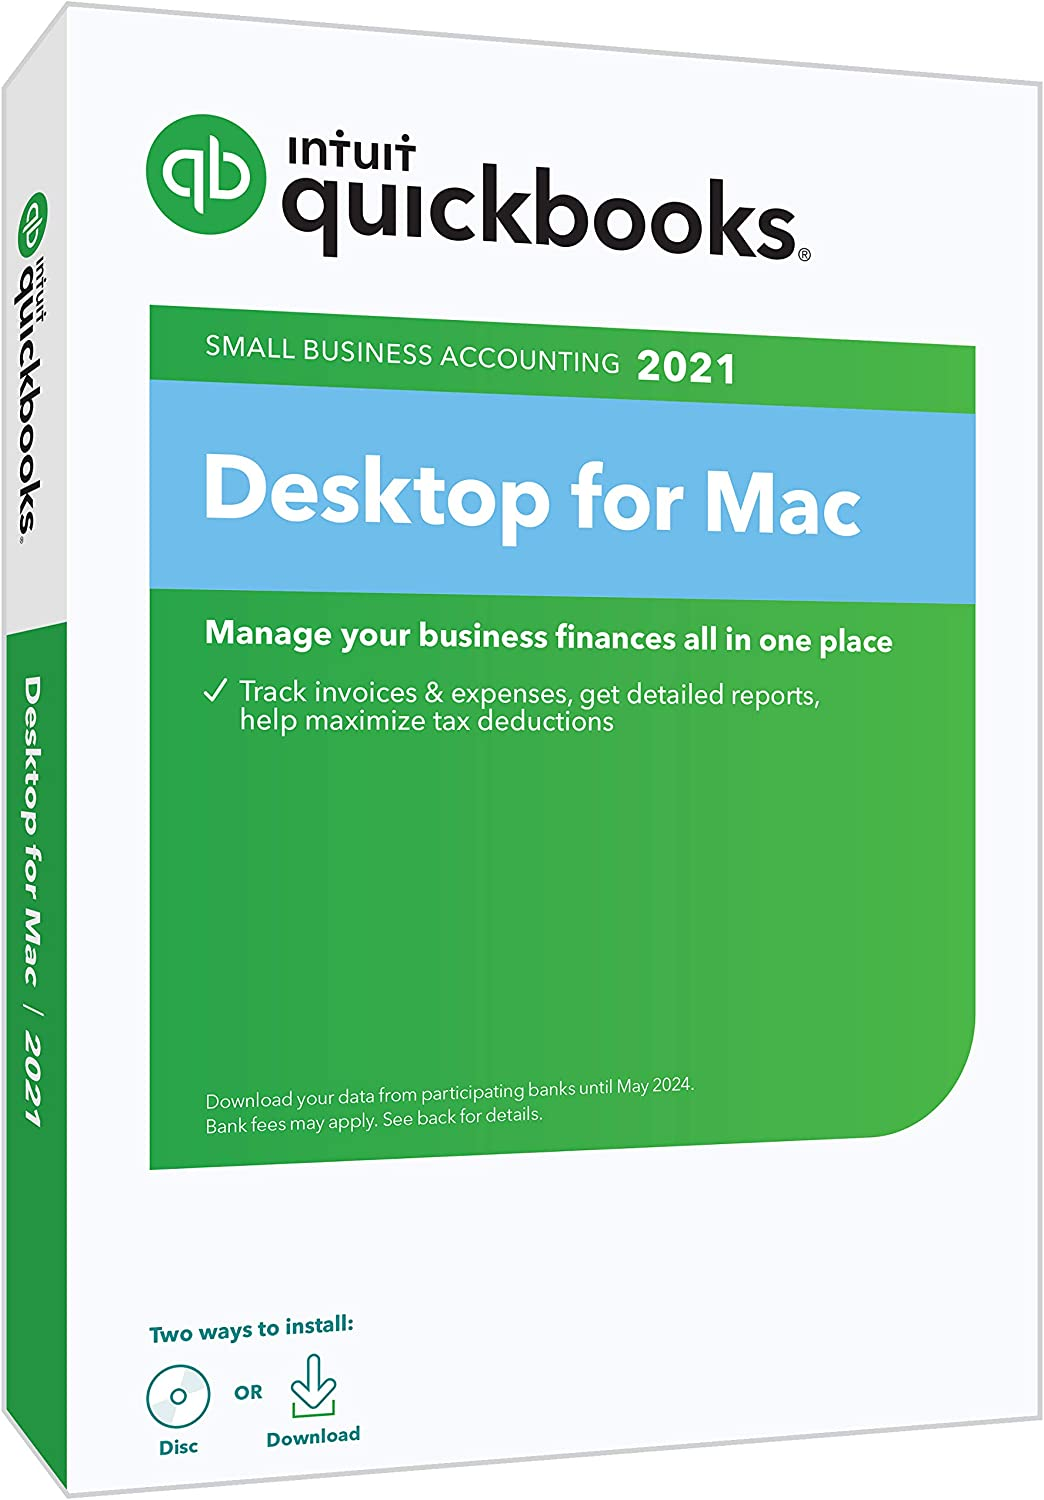 QuickBooks Desktop for Mac 2021 Accounting Software for Small Business with Shortcut Guide [Mac Disc]